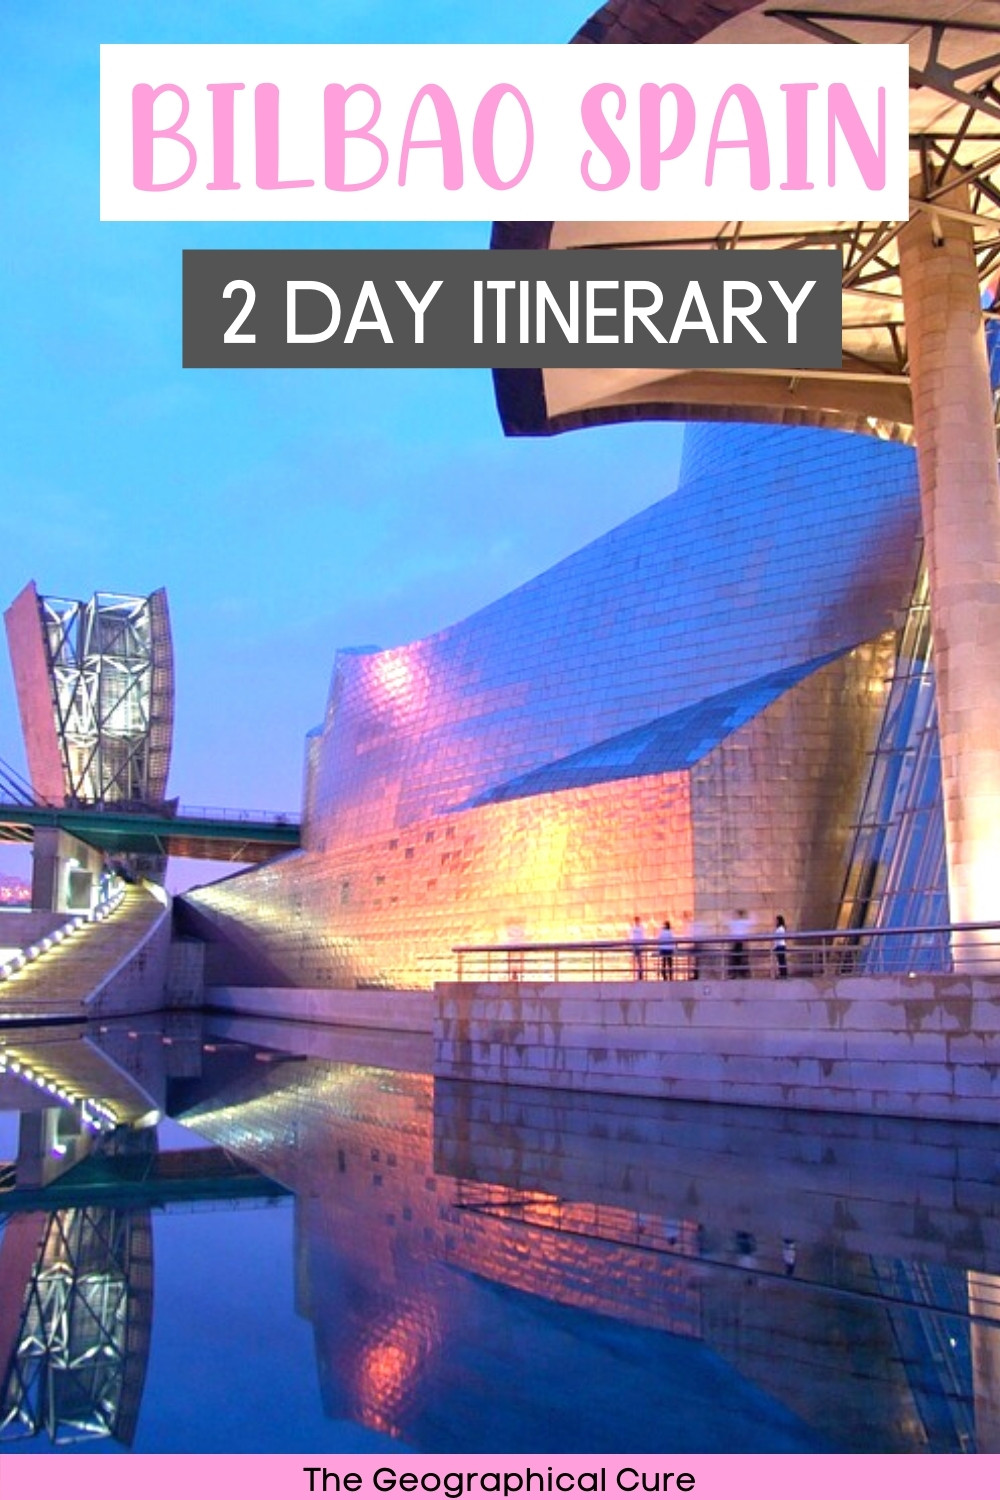 2 Days in Bilbao Spain Itinerary